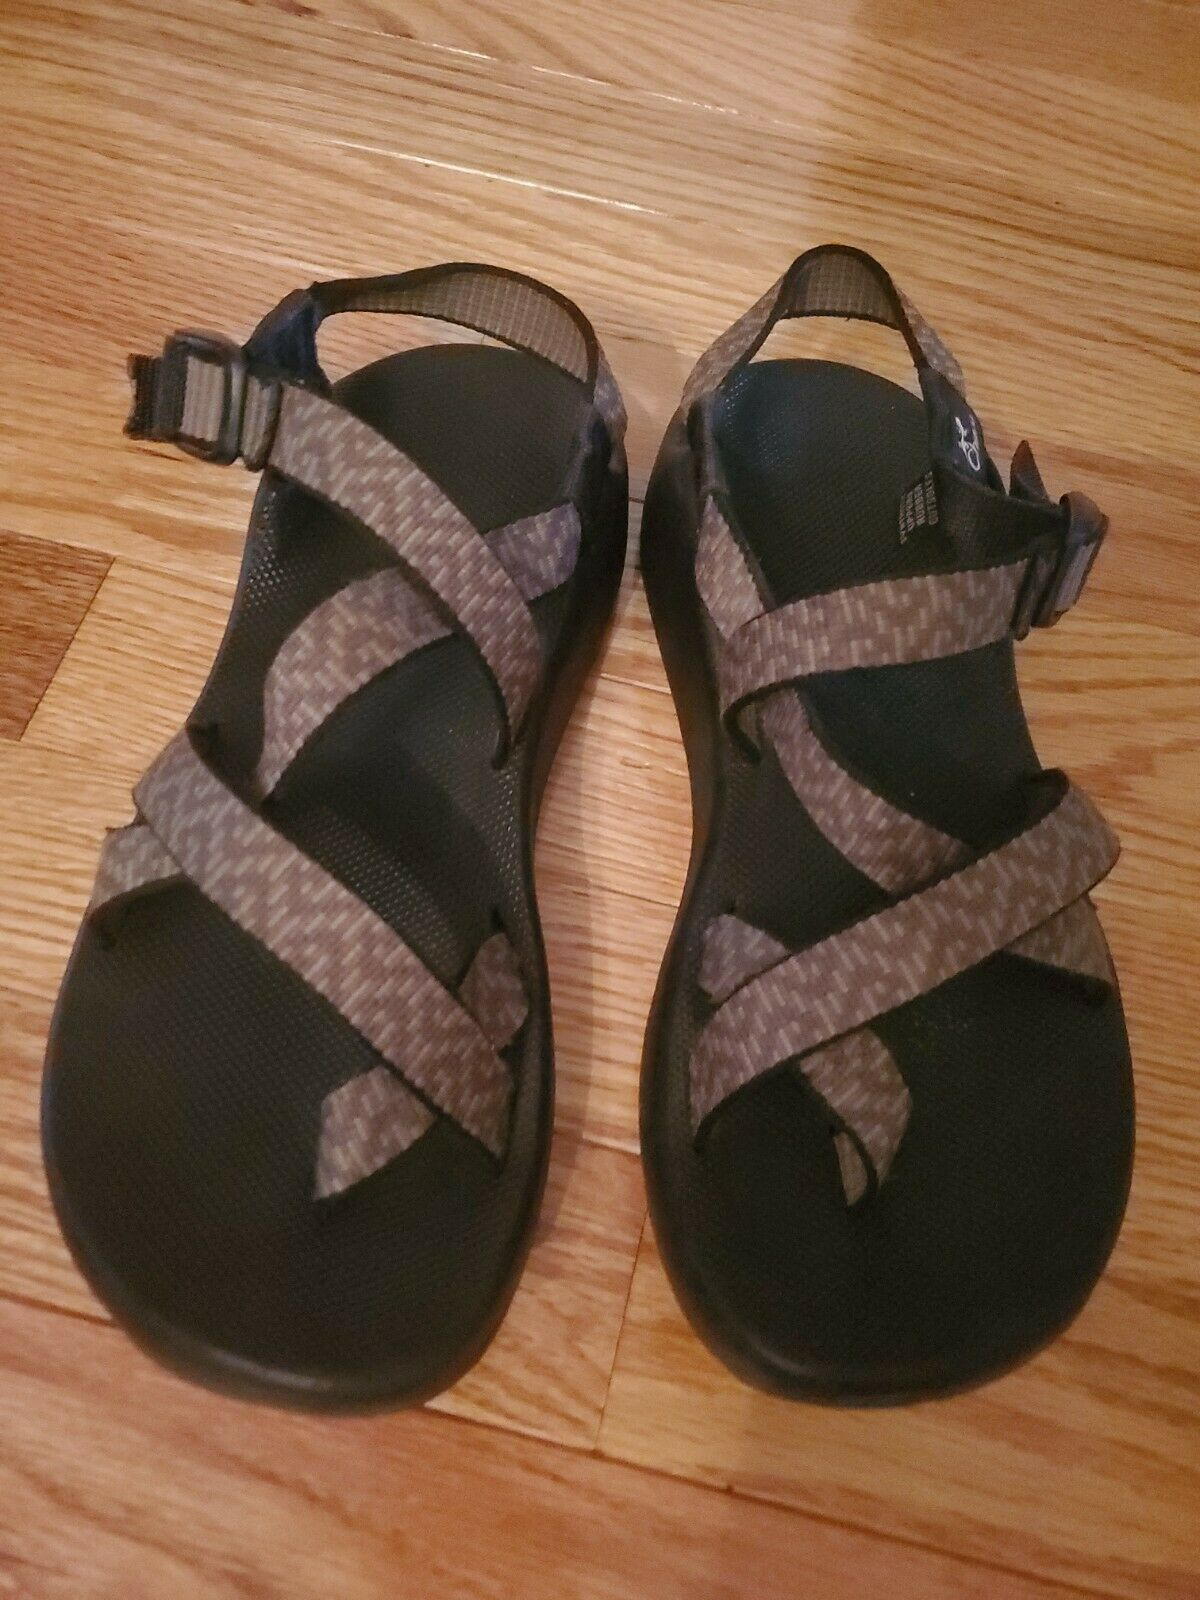 CHACO Women's Size 8 Strappy Sandals - image 2